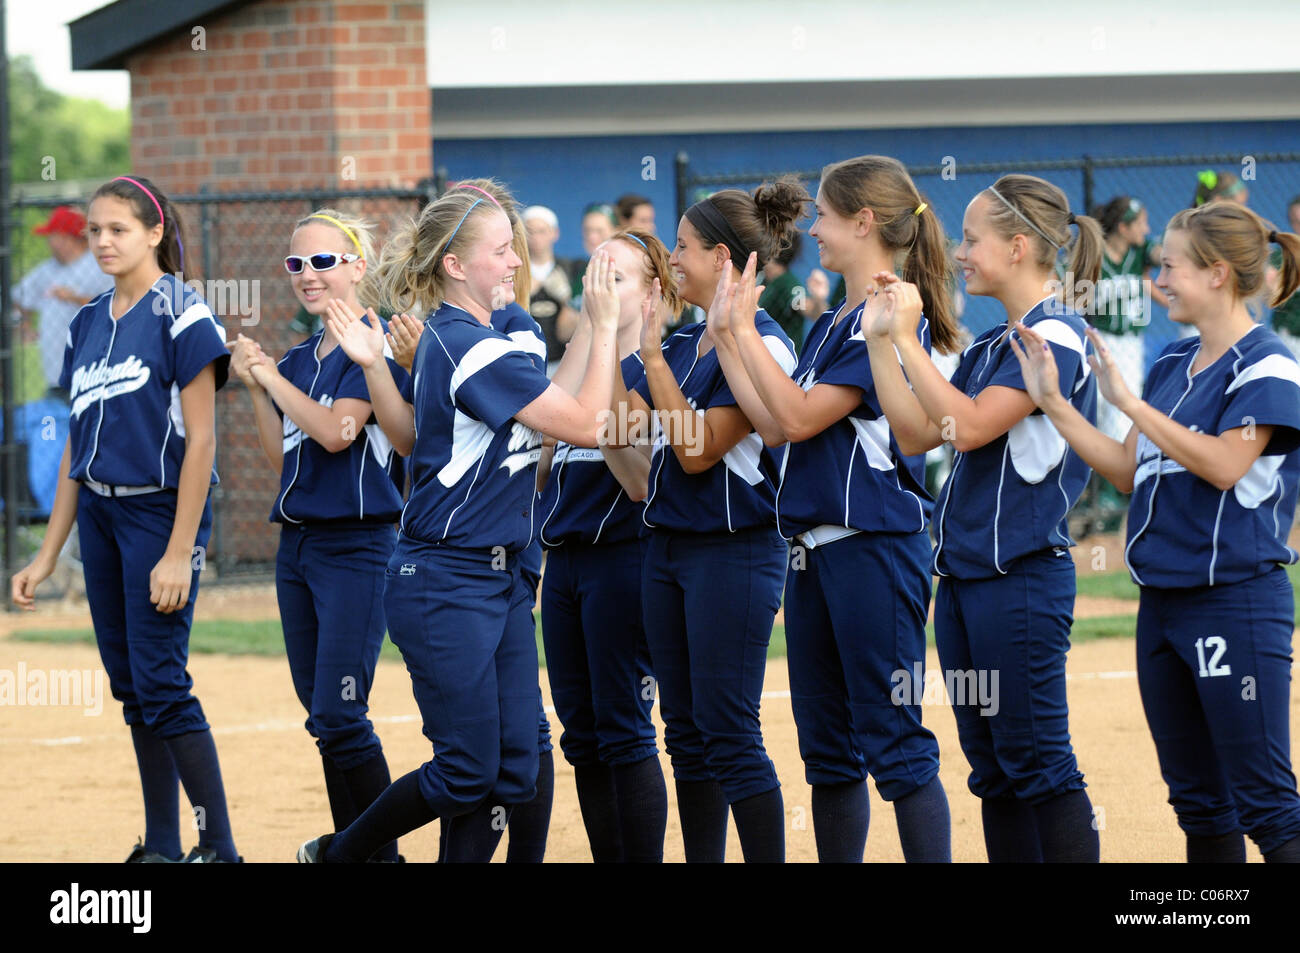 Players smile and celebrate during player introductions prior to a high school sectional playoff game. USA. - Stock Image